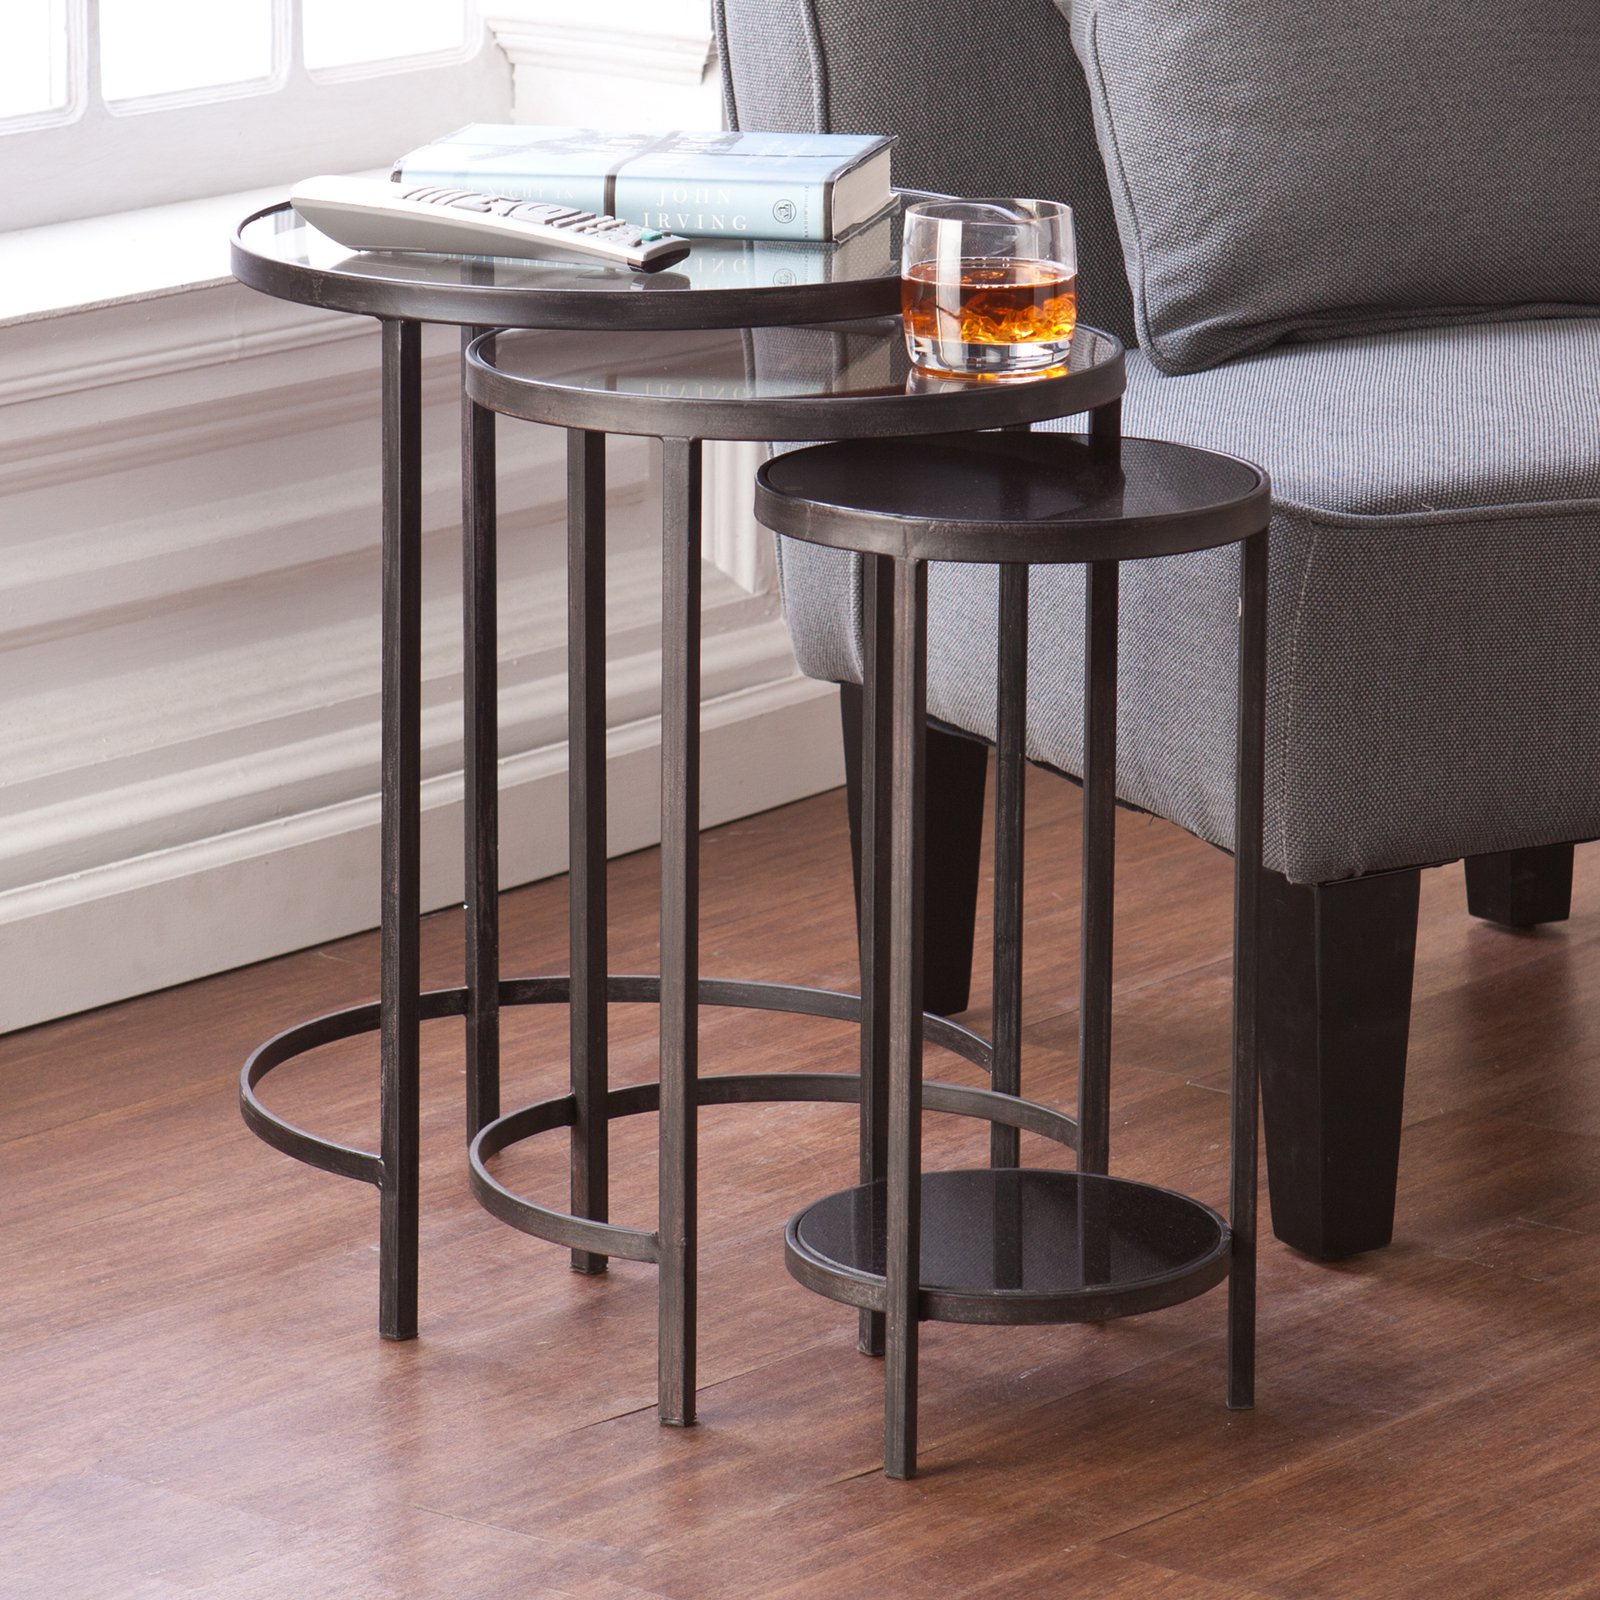 Holly & Martin Ocelle 3 Piece Nesting Tables - Black